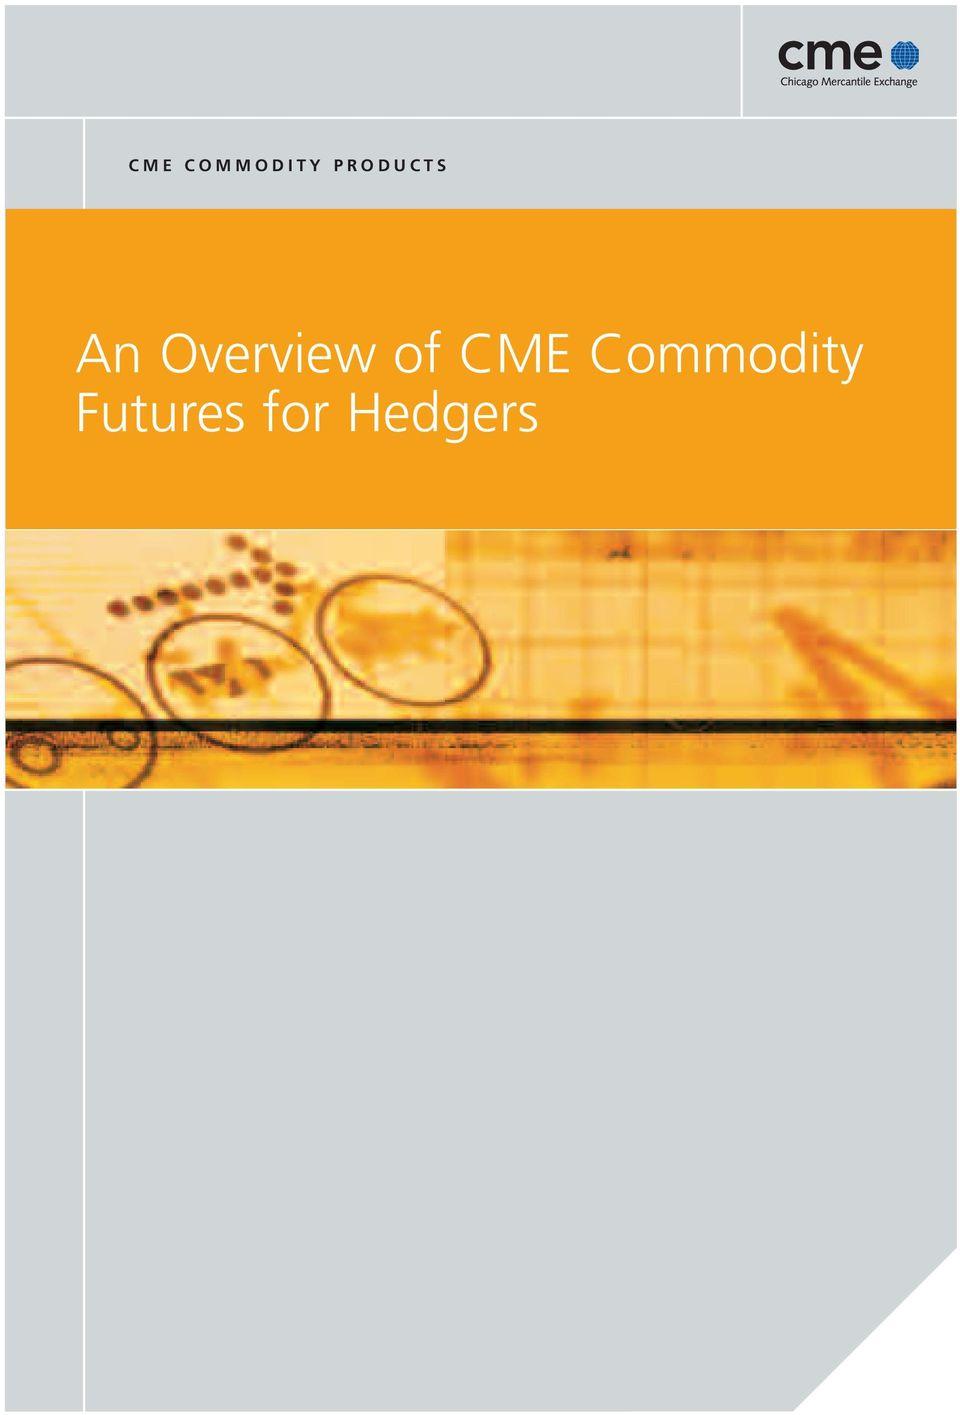 Overview of CME